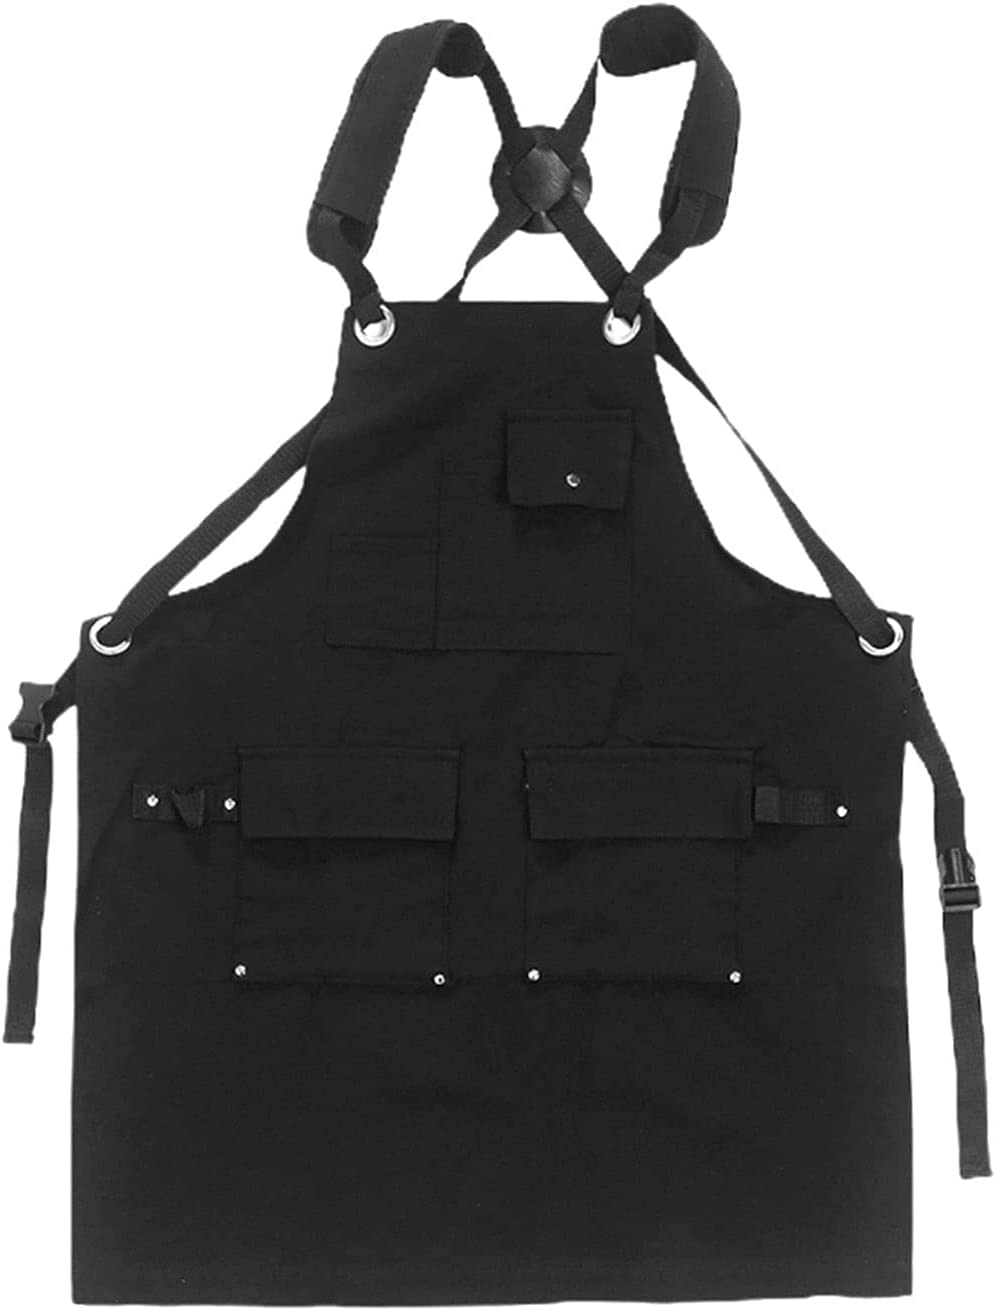 JKXWX Tool Bag Canvas Fully Adjustable Work Apron with Tool Pock